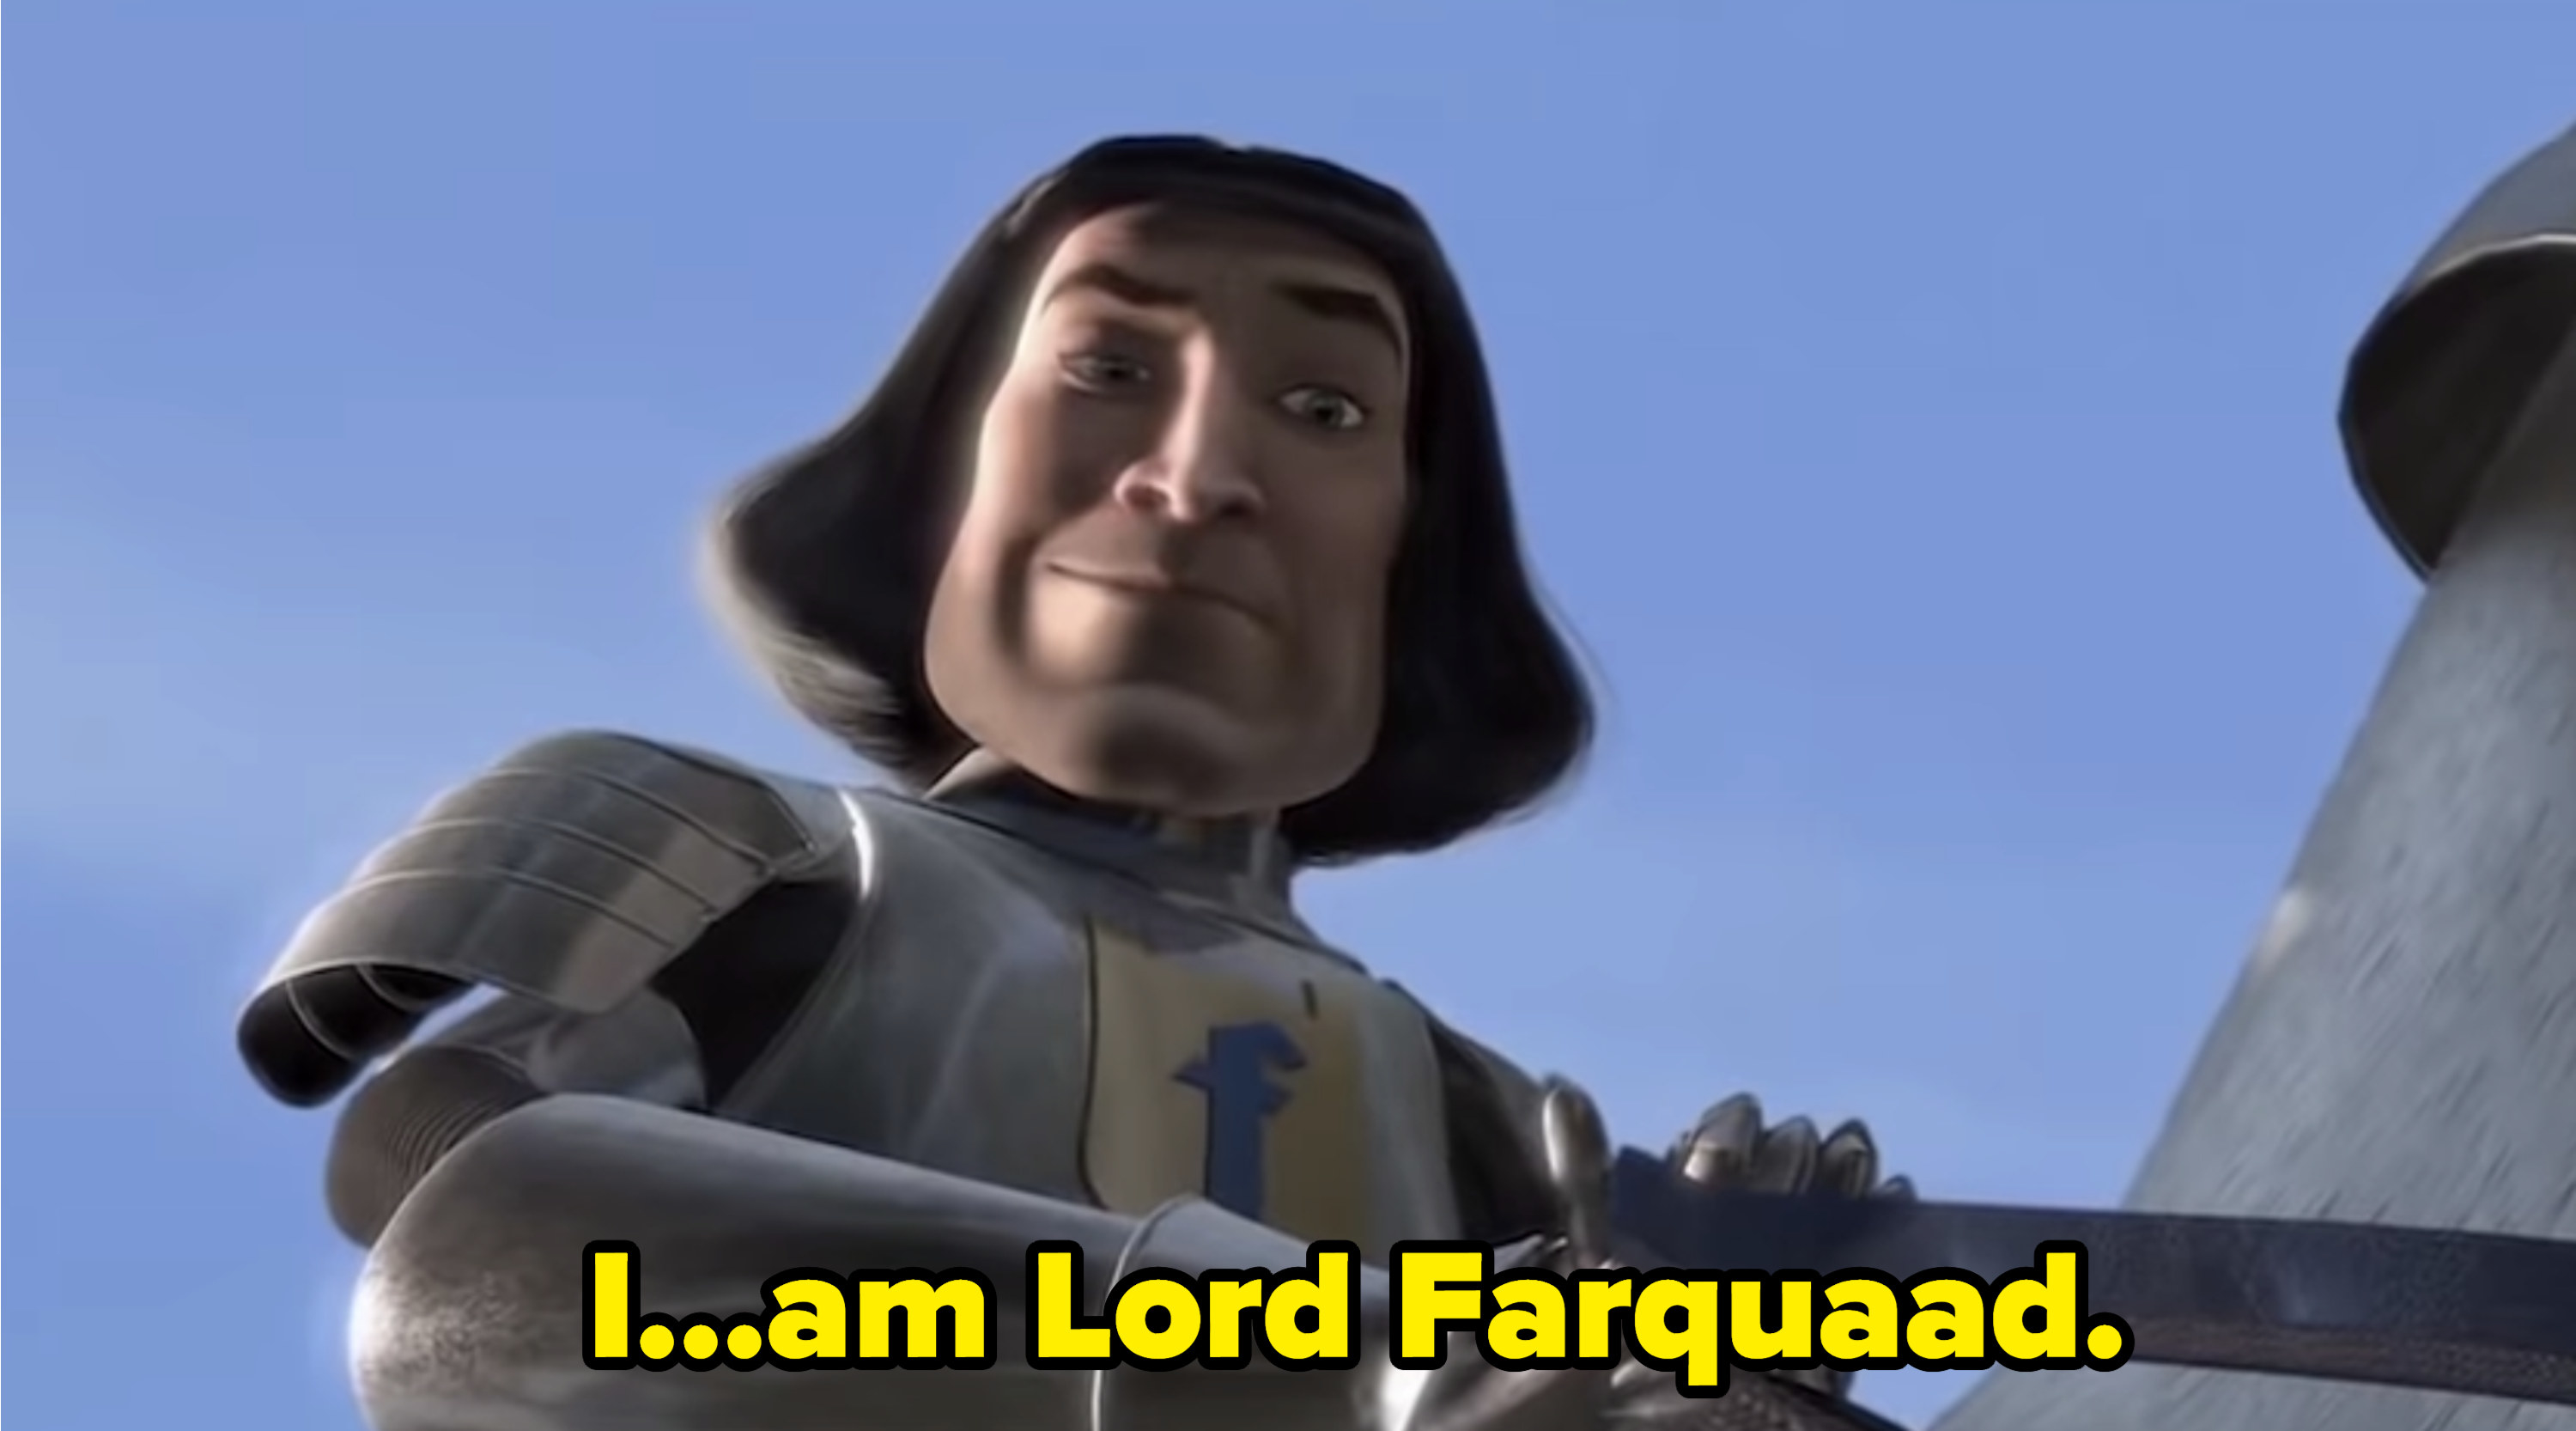 Lord Farquaad on top of a horse, introducing himself to Fiona